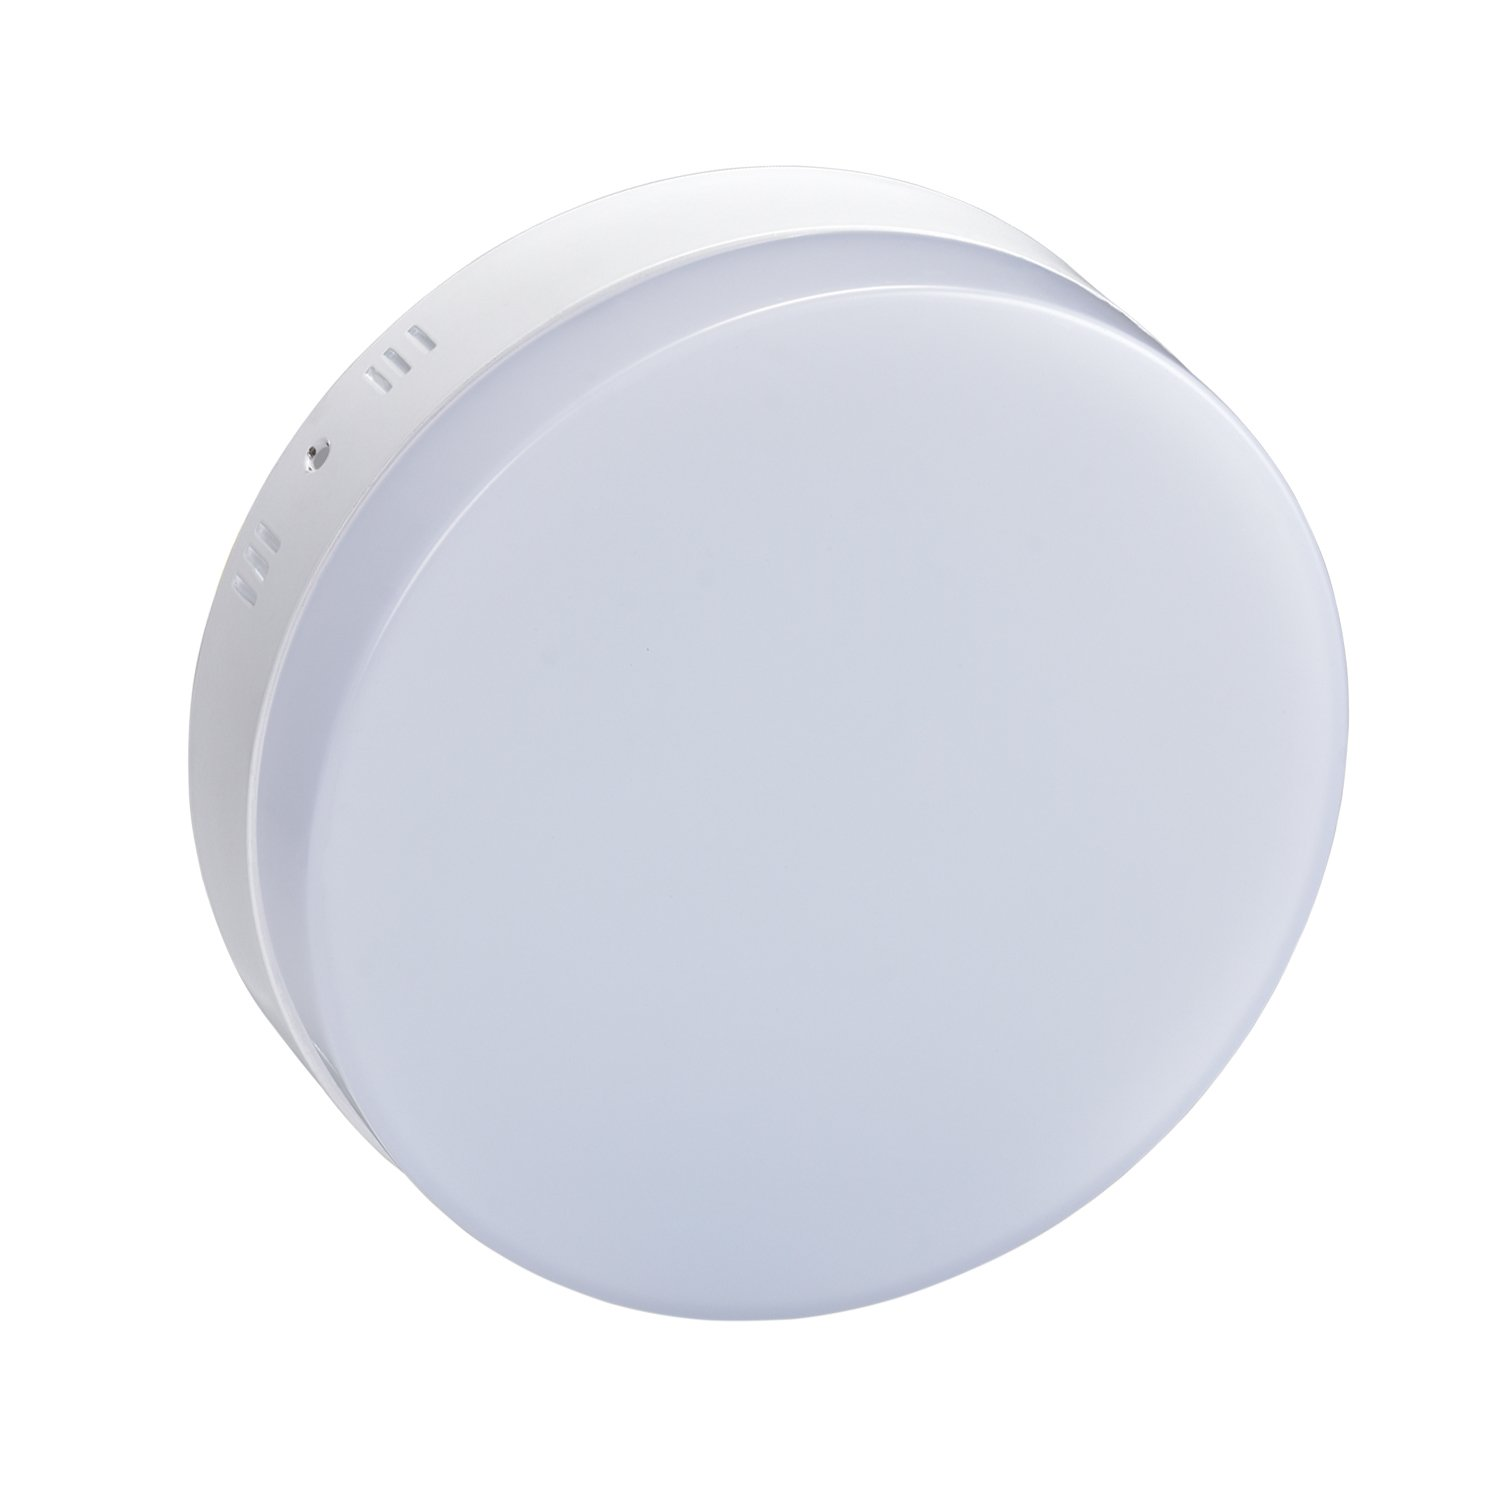 Bathroom Ceiling Light,Surface Mount Round Led Ceiling Light 12W 960LM Flush Mount Panel Lighting Super Bright,Bathroom-6000K(Daylight White)